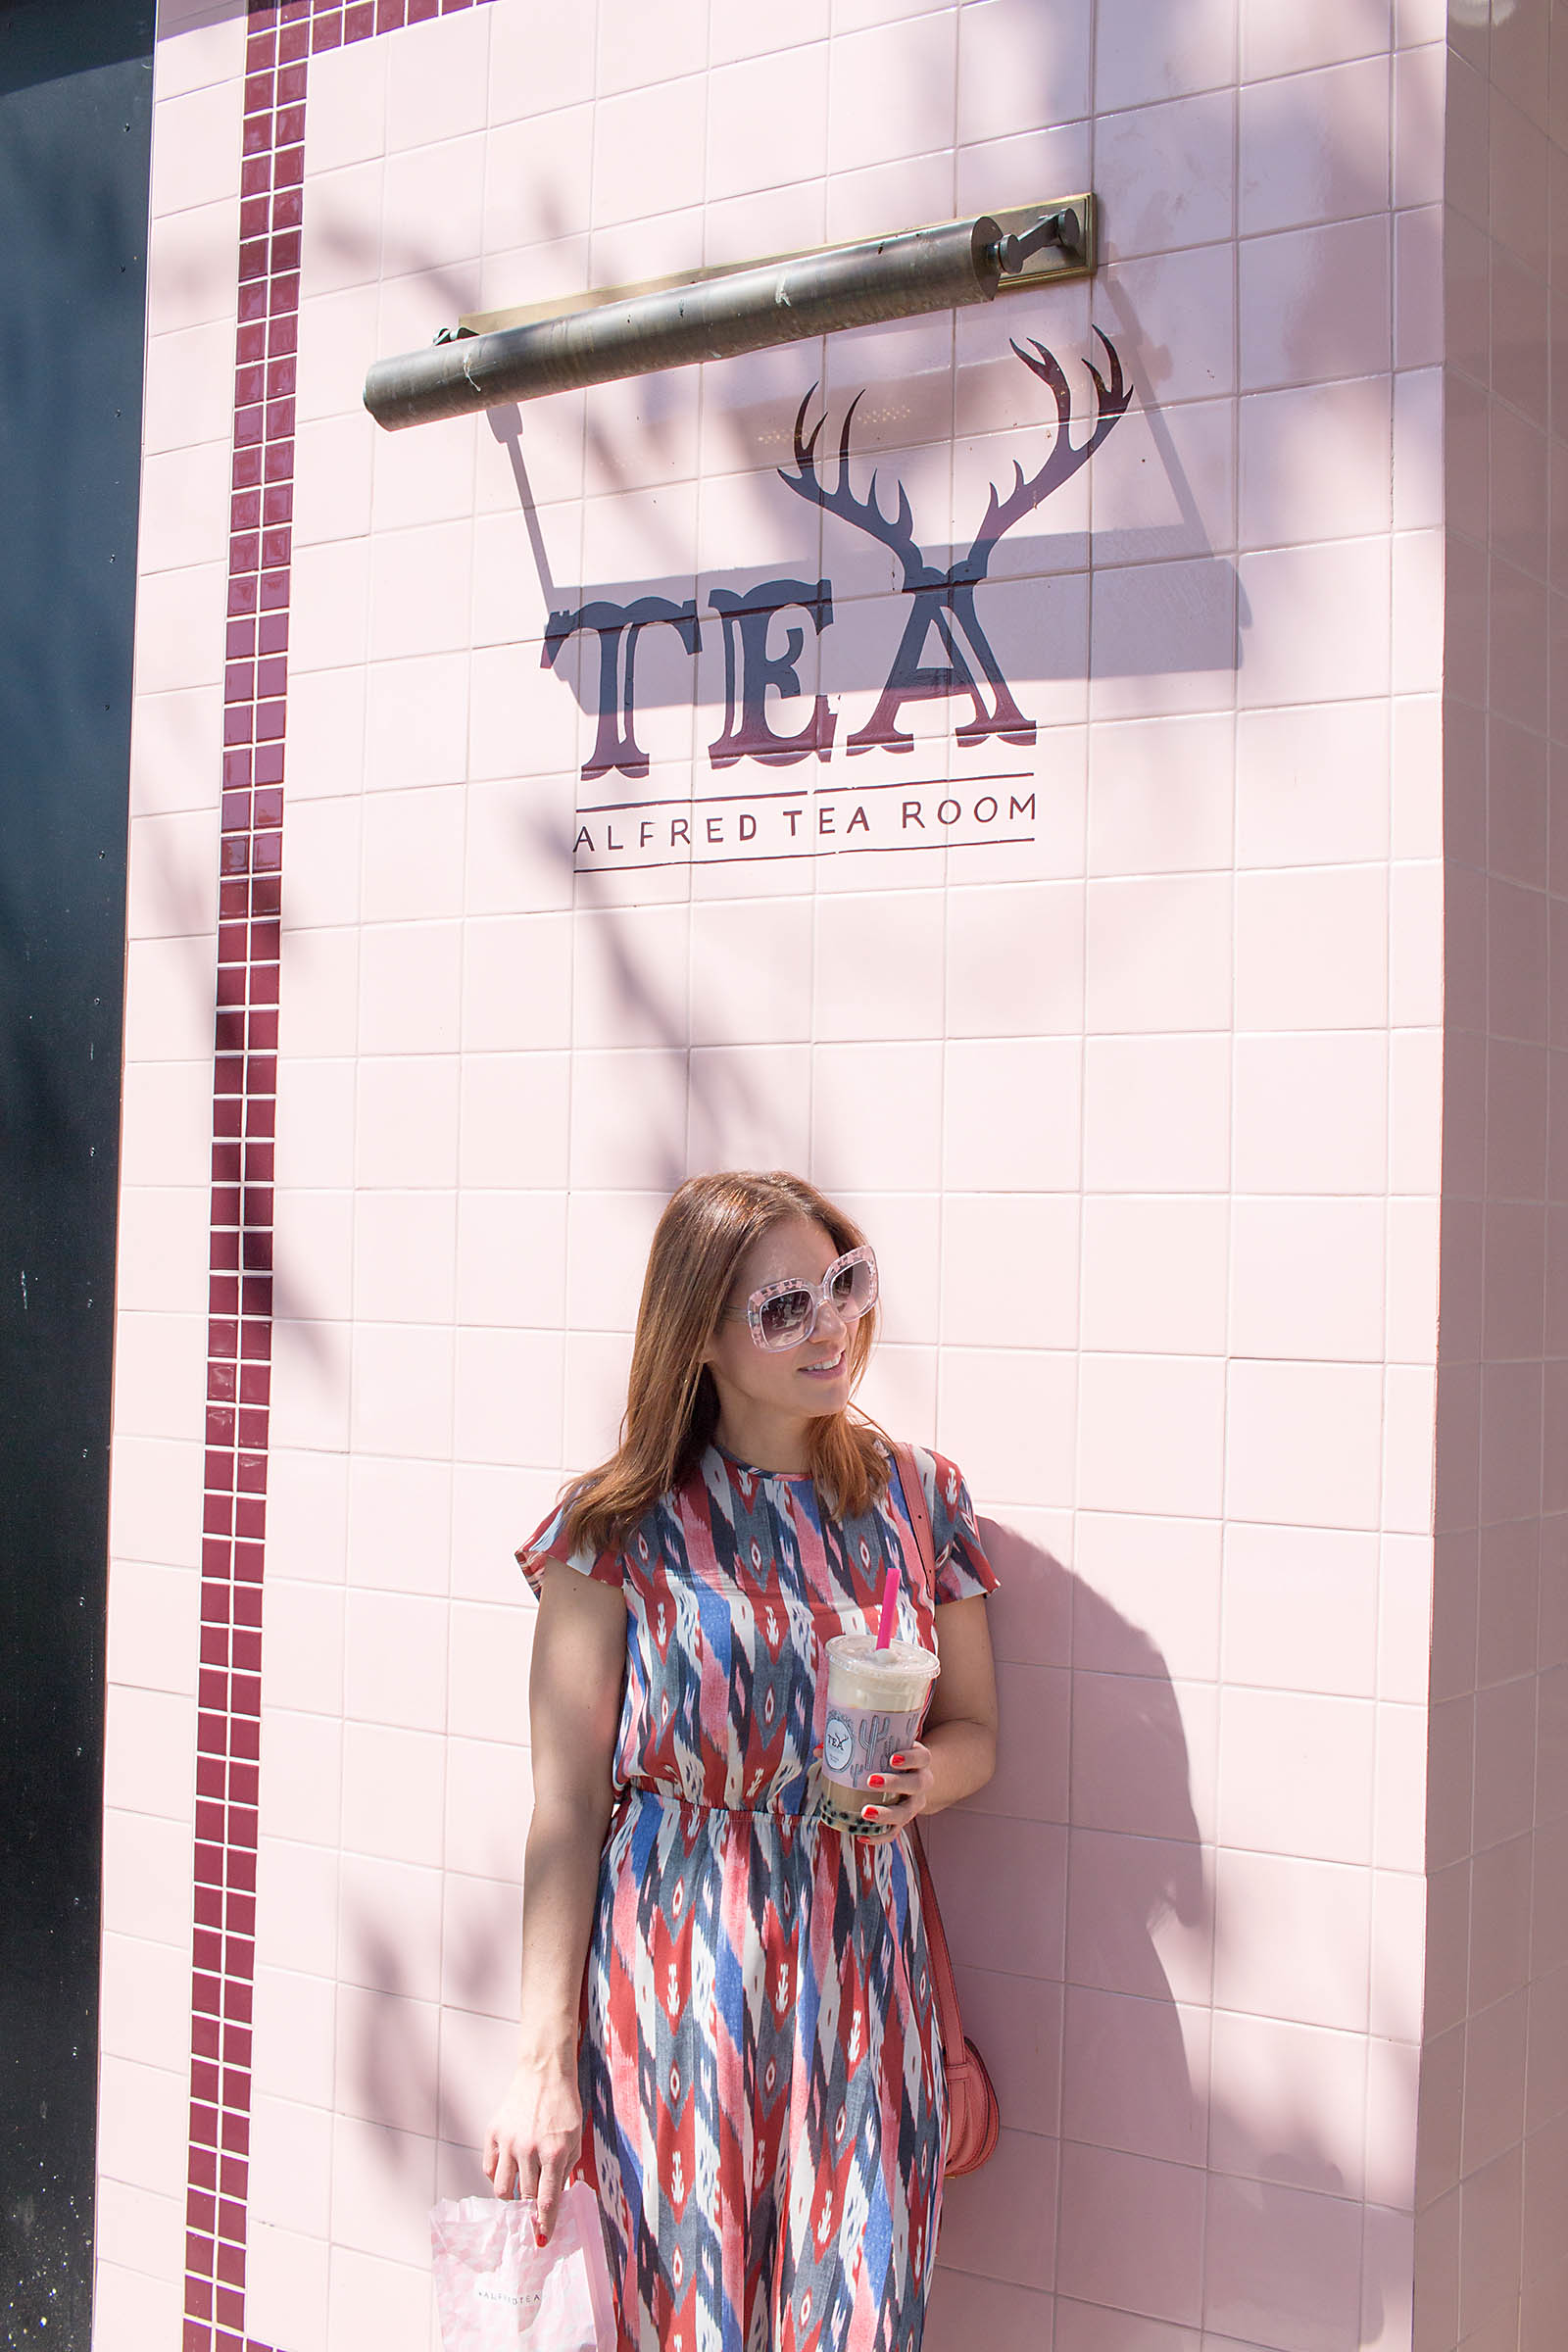 Anna Roufos Sosa of Noir Friday in Isabel Marant visiting Alfred Tea Room in LA.